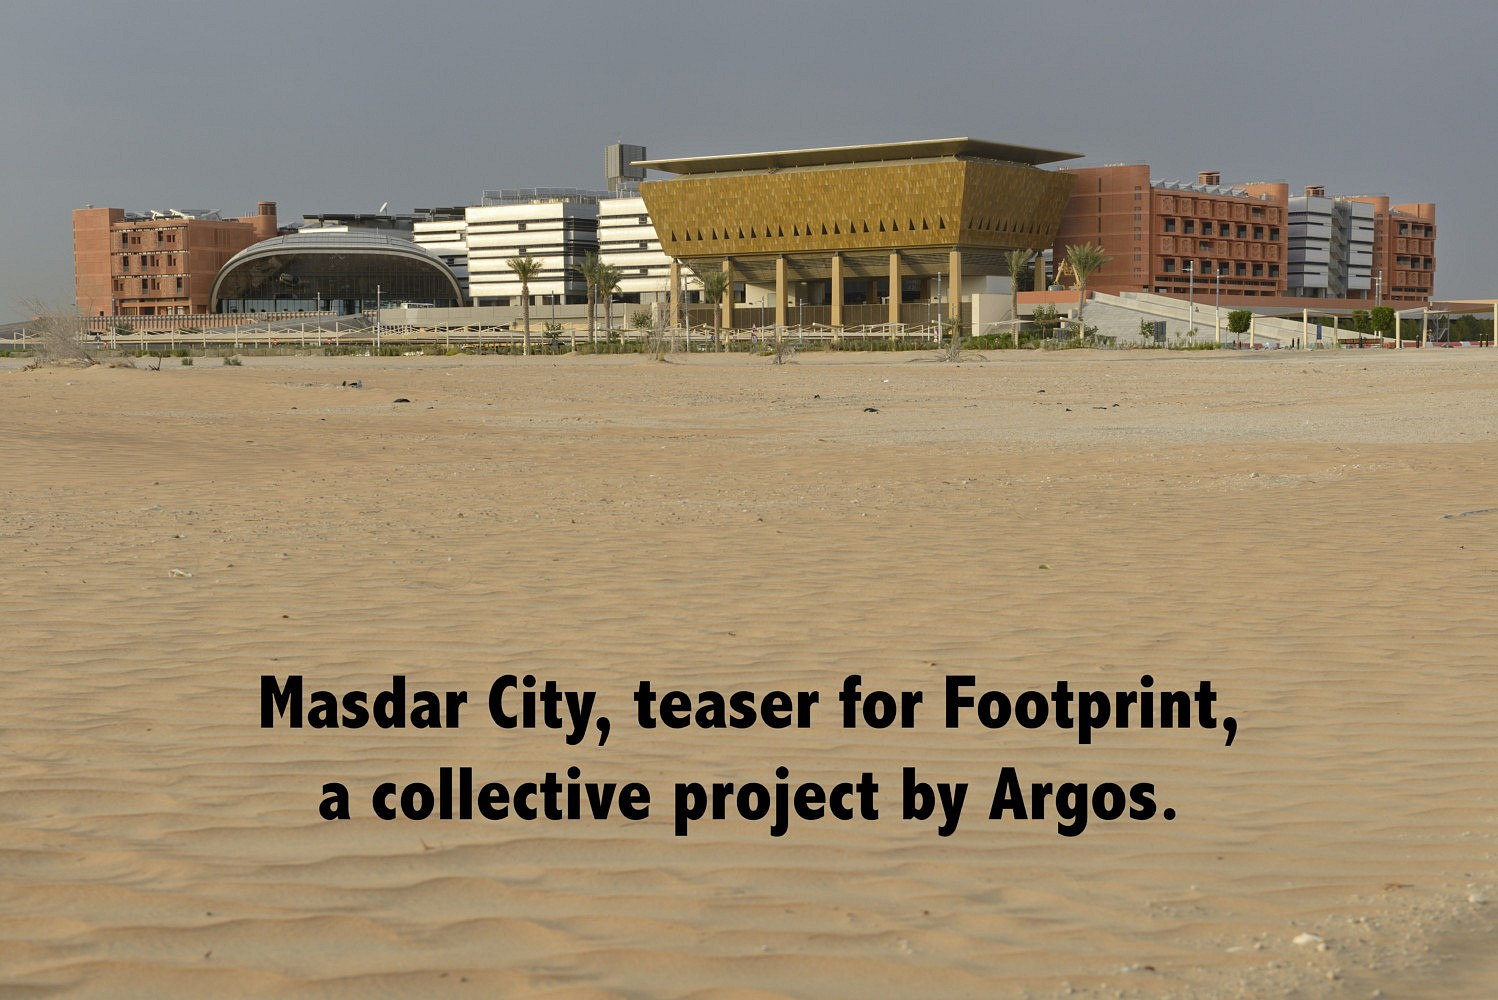 Video - Masdar City | Teaser for Footprint, collective project by Argos